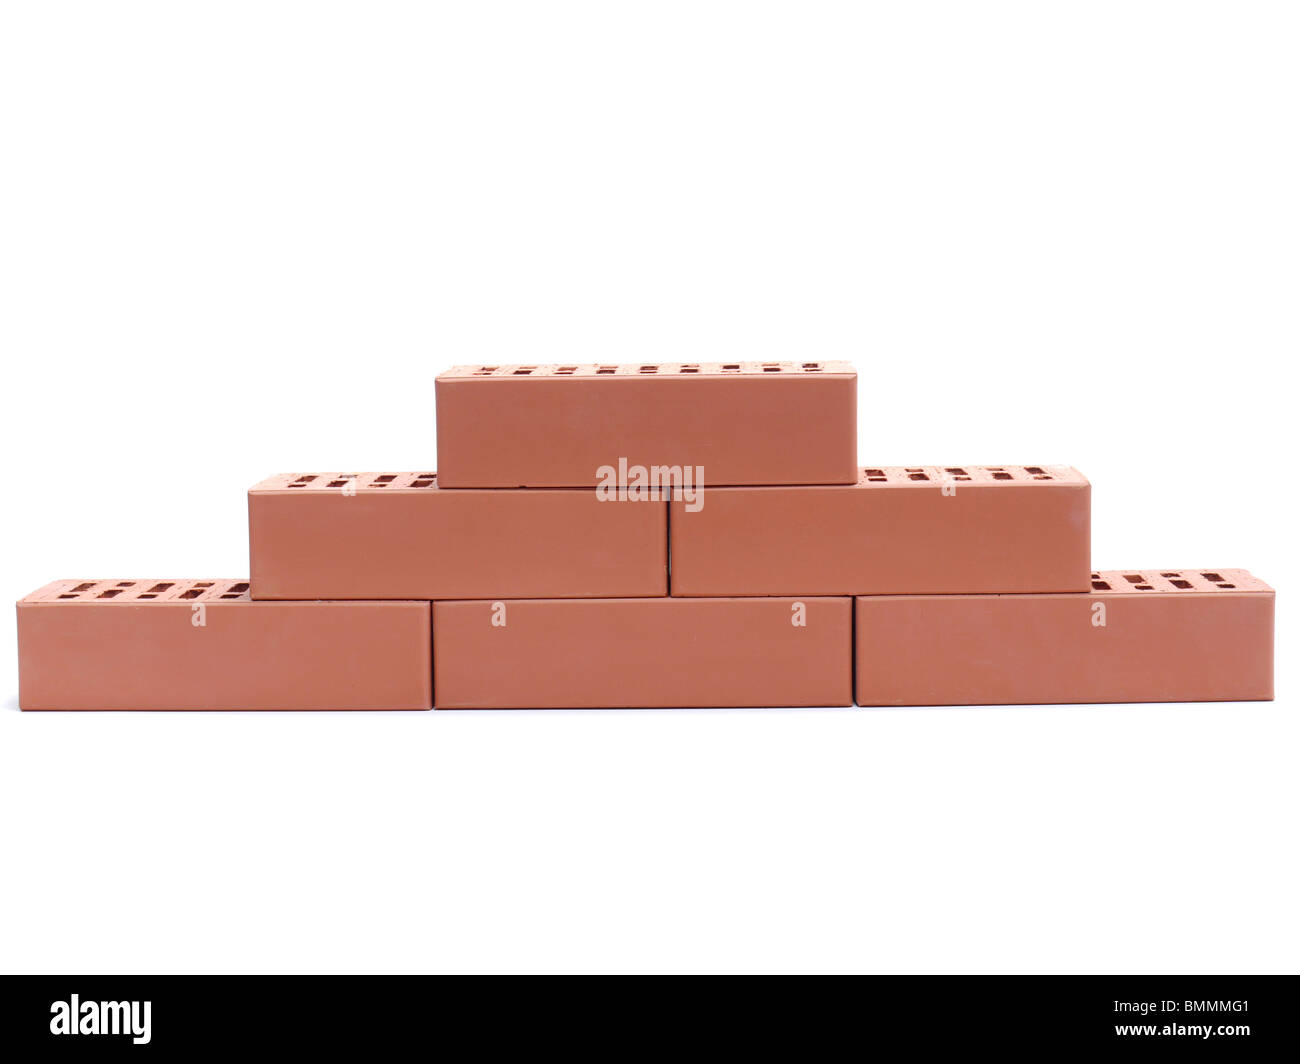 Partial wall made of perforated bricks over white background - Stock Image